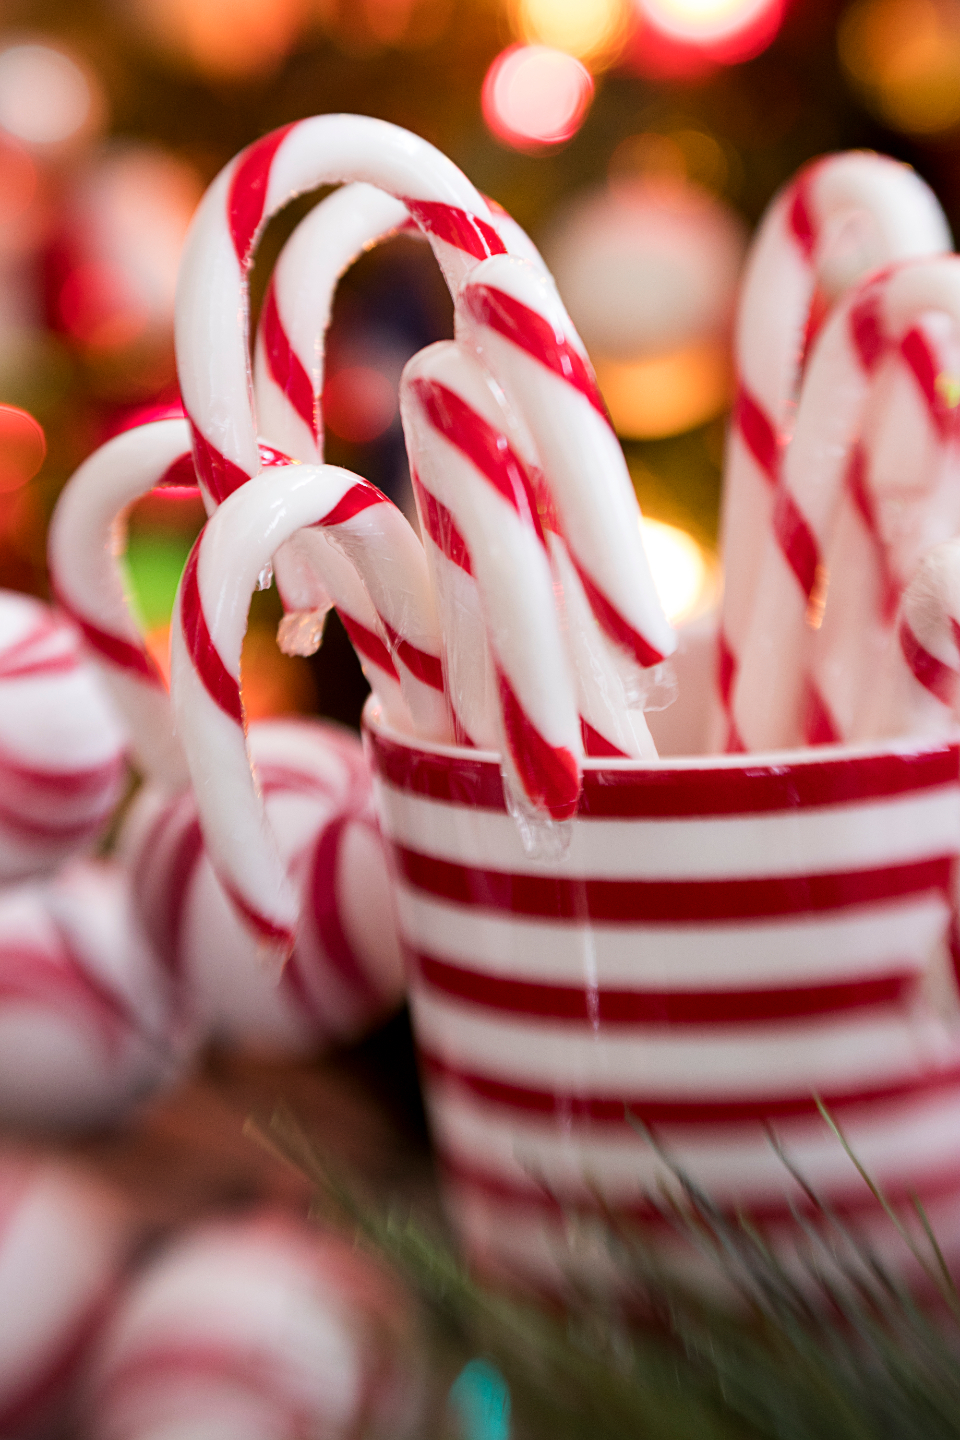 Free stock photo of candy canes